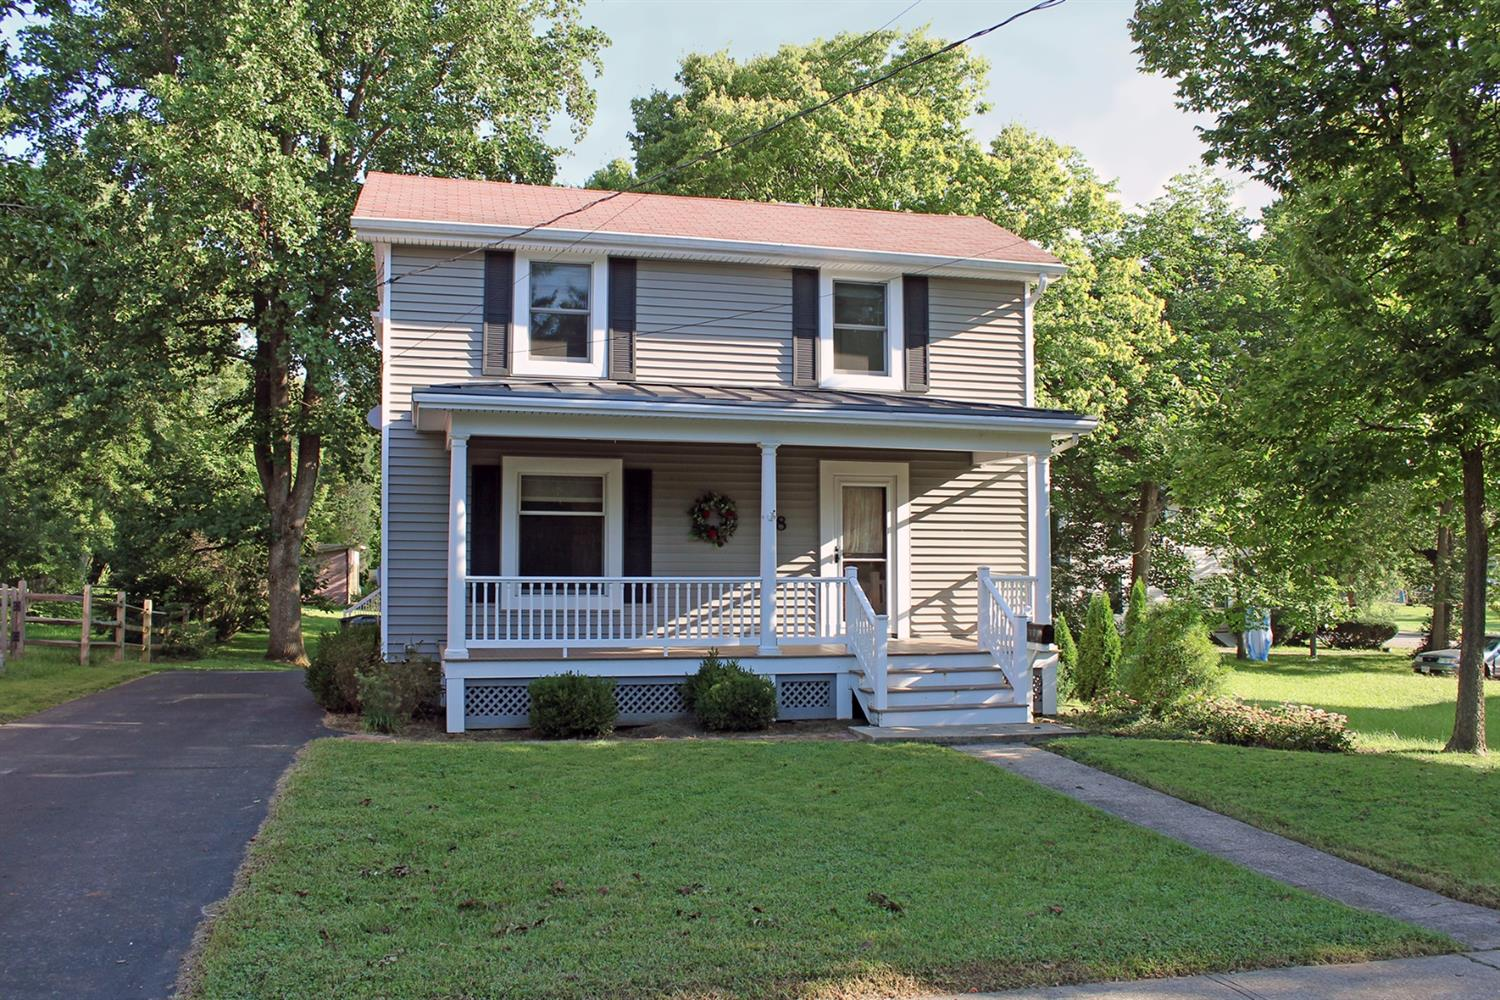 58 W Sharon Rd Glendale, OH